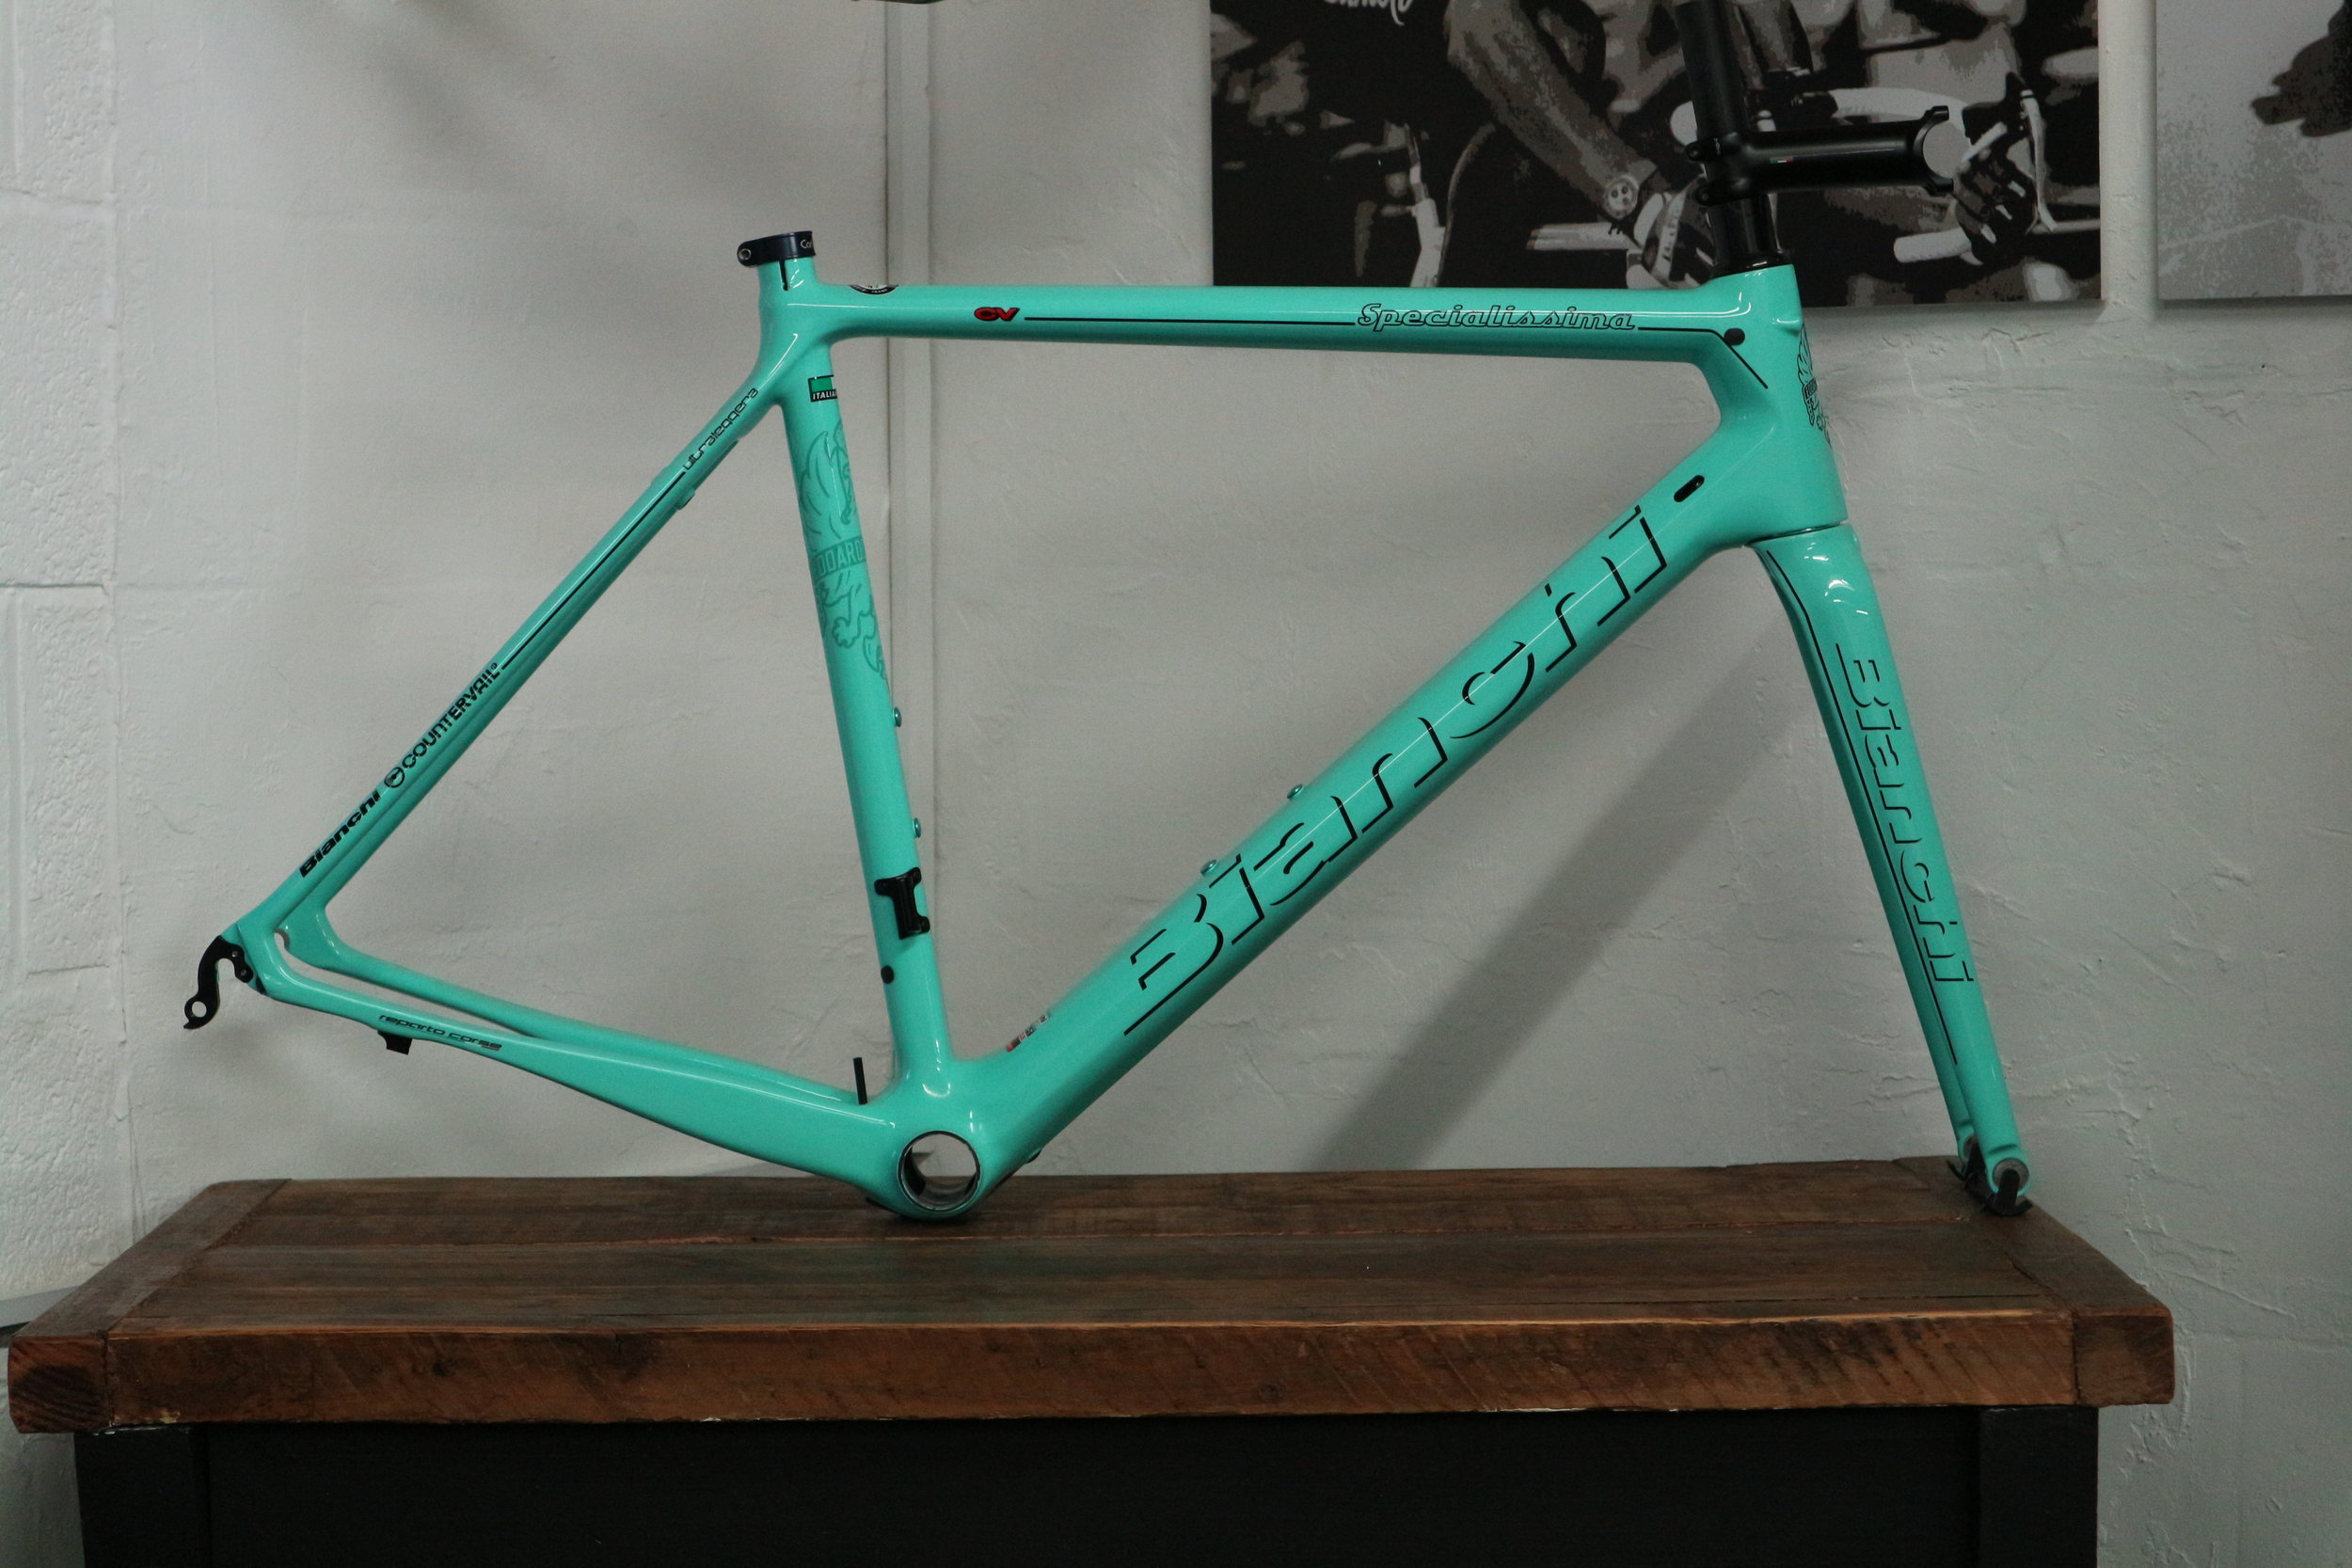 Bianchi Specialissima in CK16 glossy.